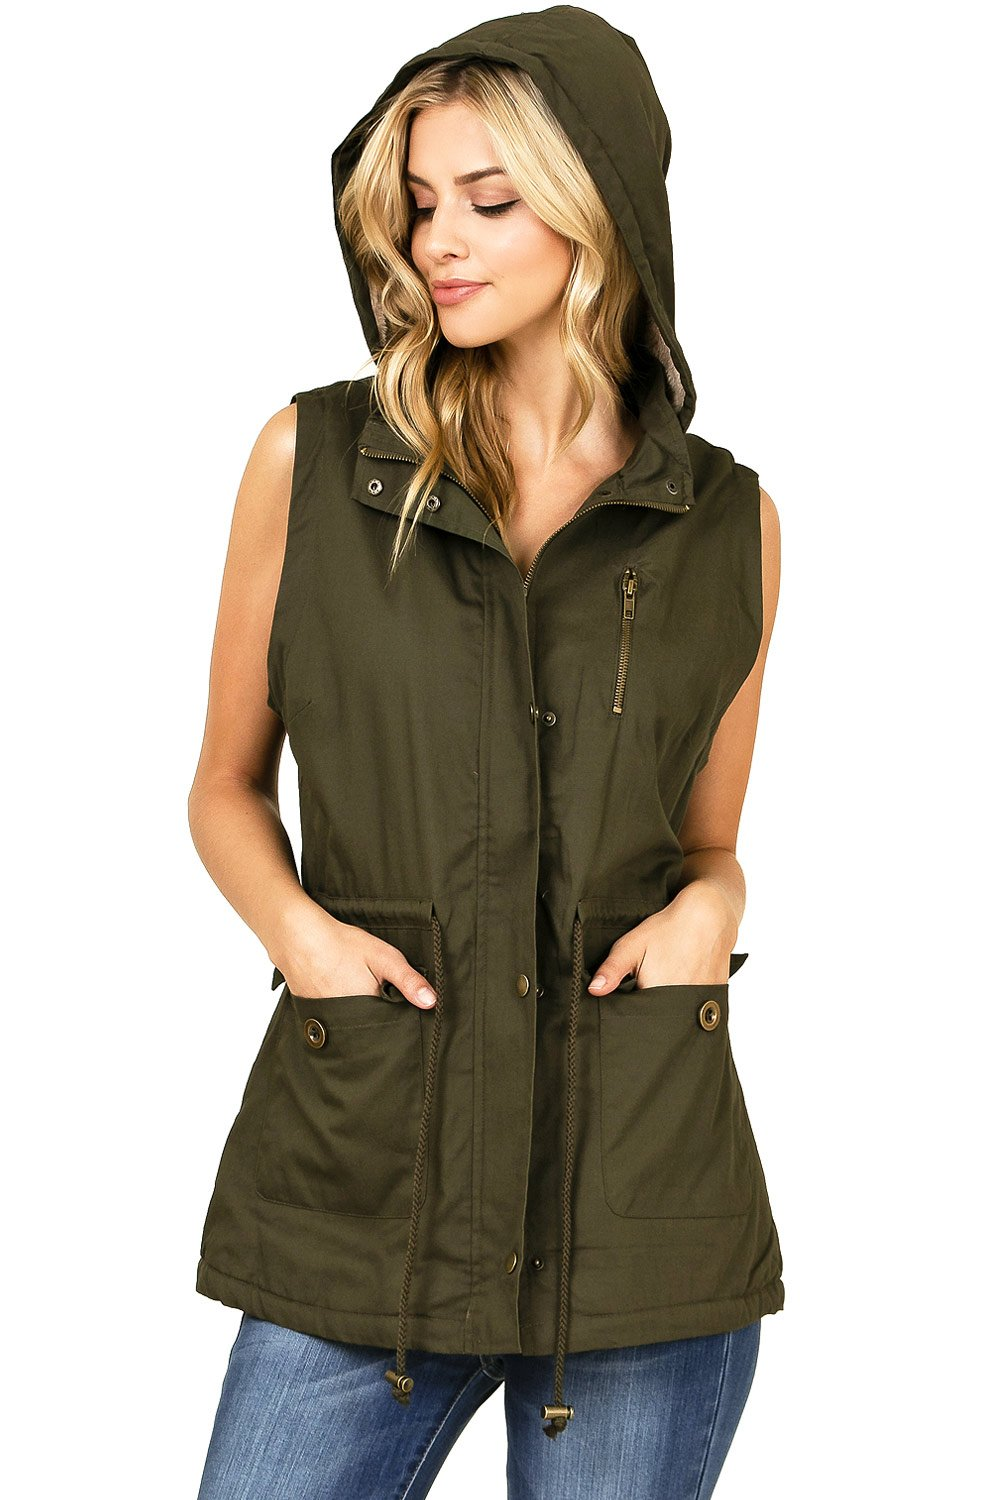 Cest Toi Women's Hooded Button Down Cargo Vest (L, Olive)